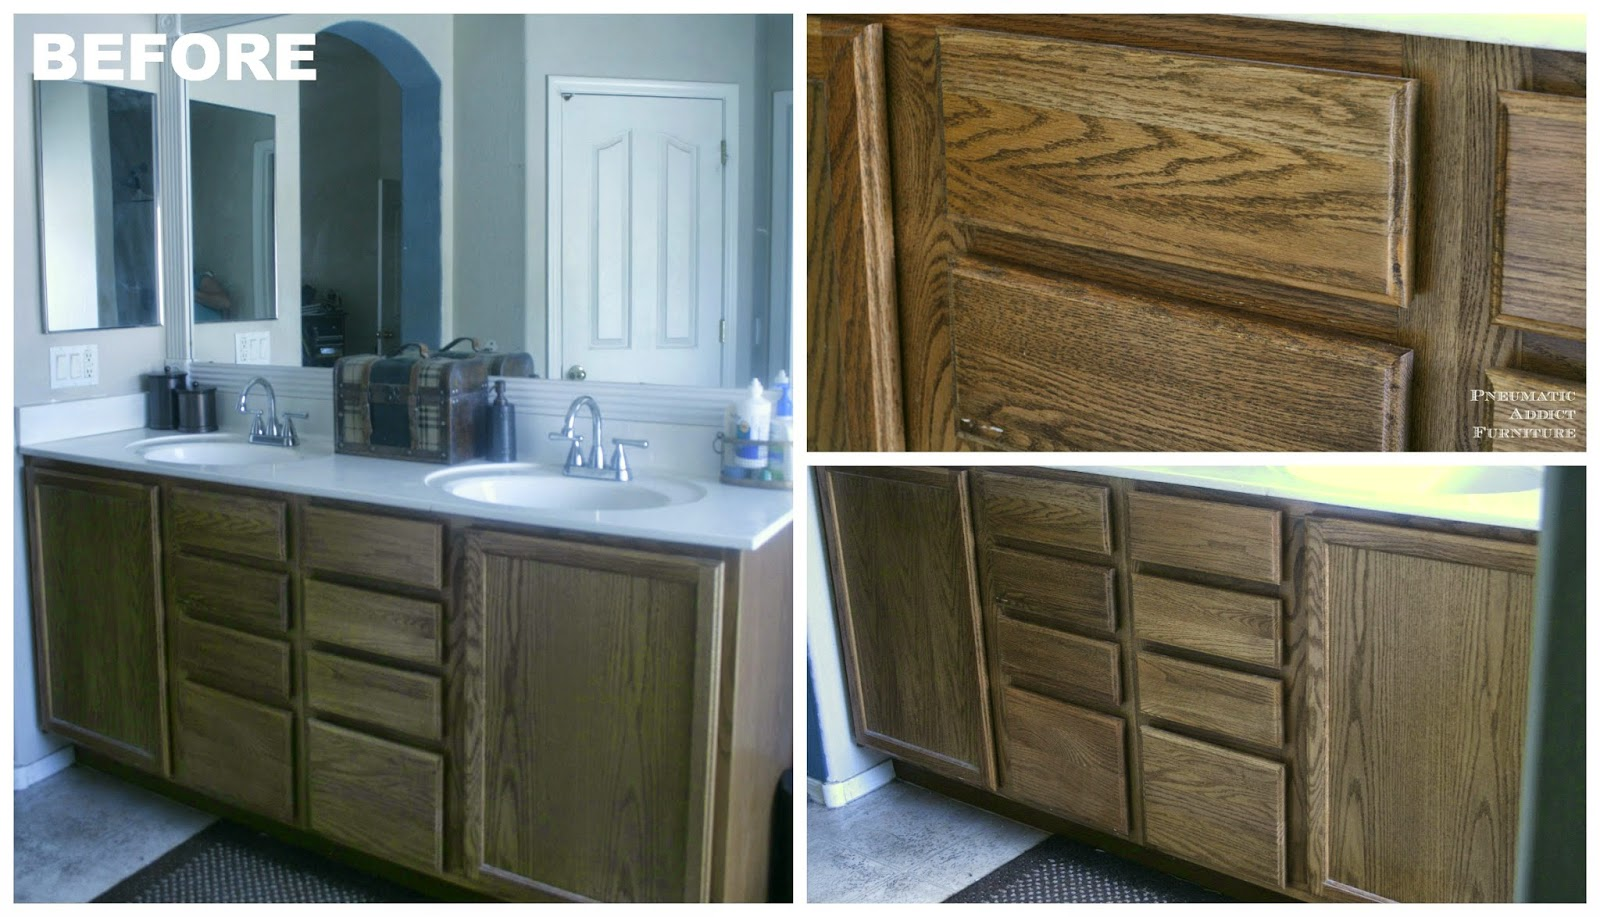 Best Way To Refinish Kitchen Cabinets Darken Cabinets Without Stripping The Existing Finish